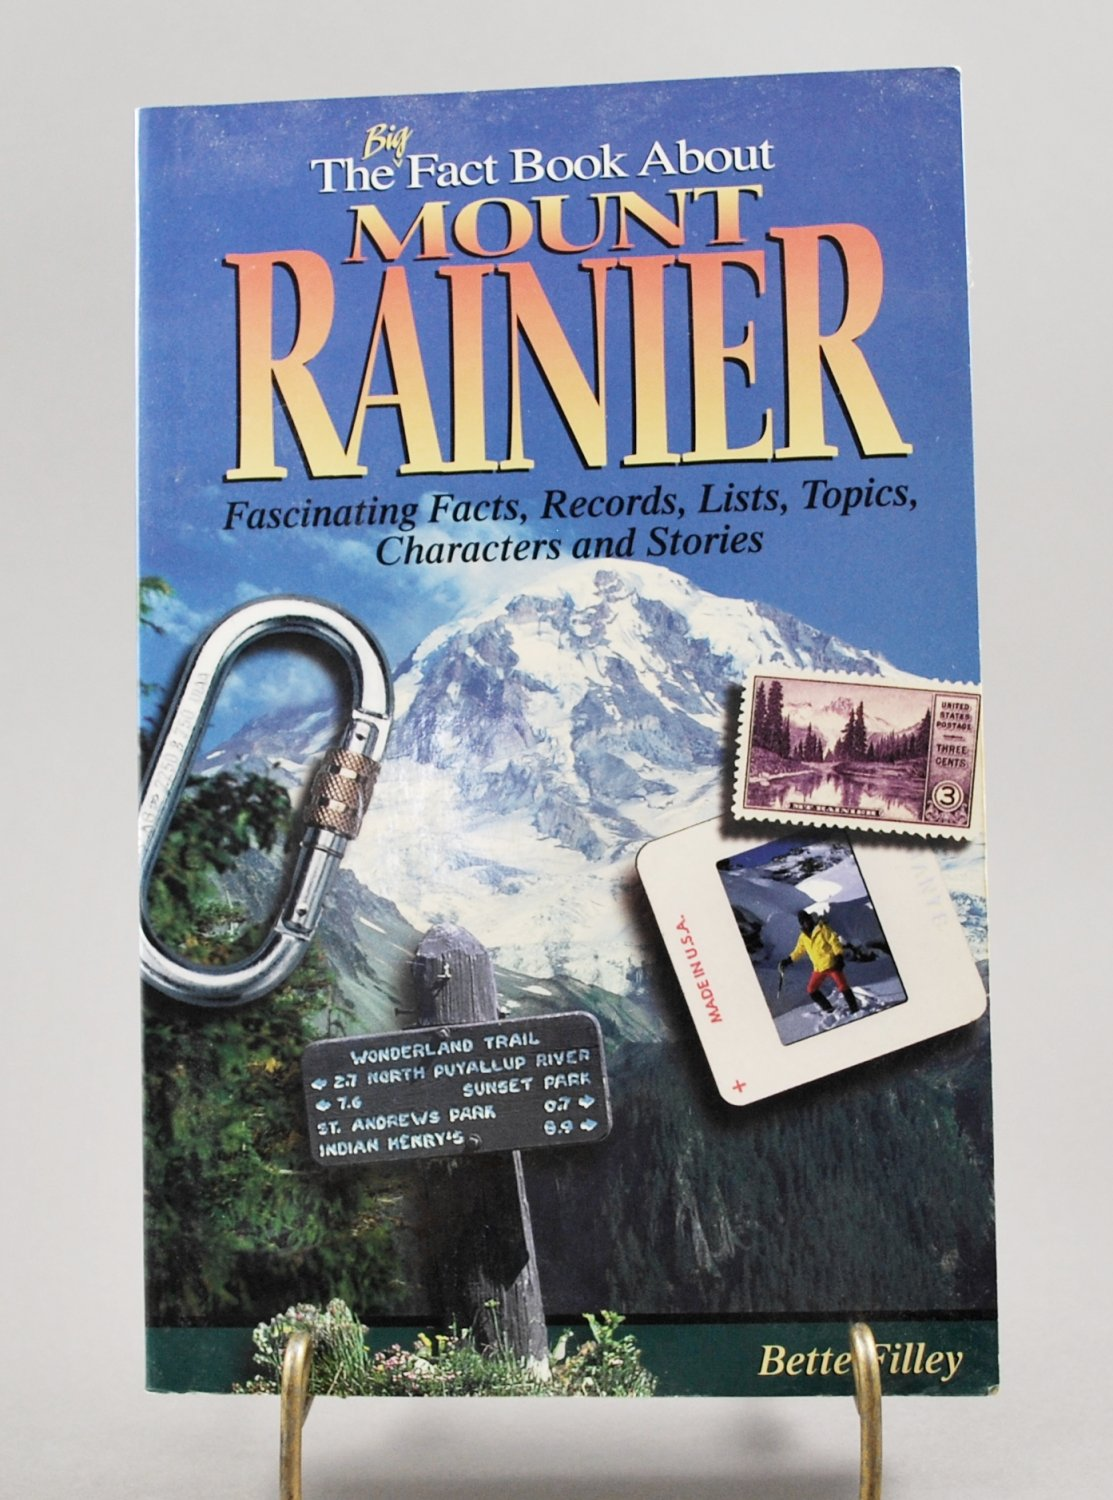 The Big Fact Book About Mount Rainier by Bette Filley Paperback